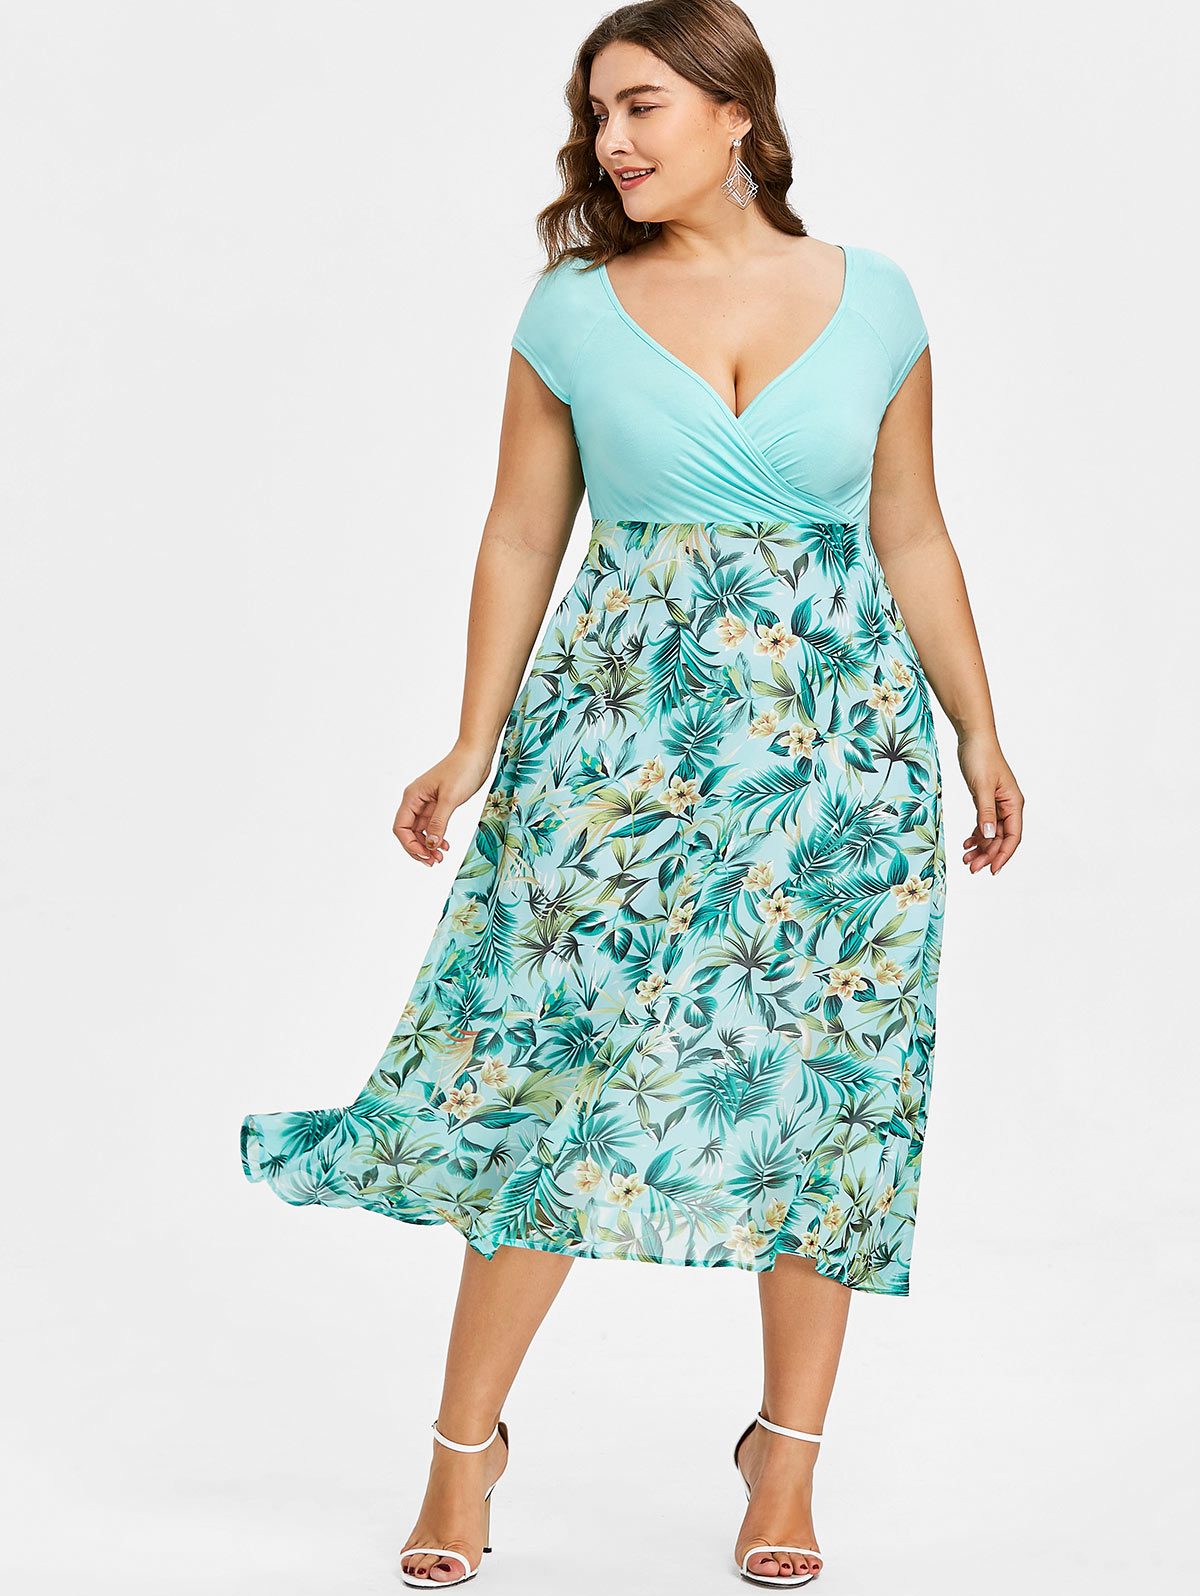 Gamiss Women Plus Size 5XL Tropical Floral Print V Neck A Line Midi Holiday Dress Casual Short